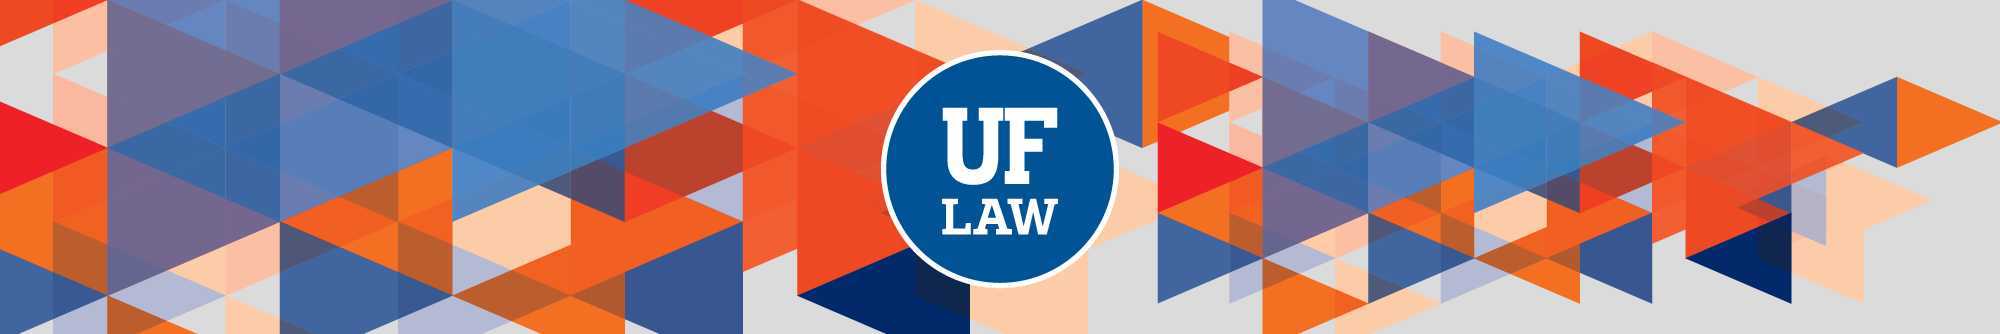 Ranking Graphics Colorful Arrows UF Law